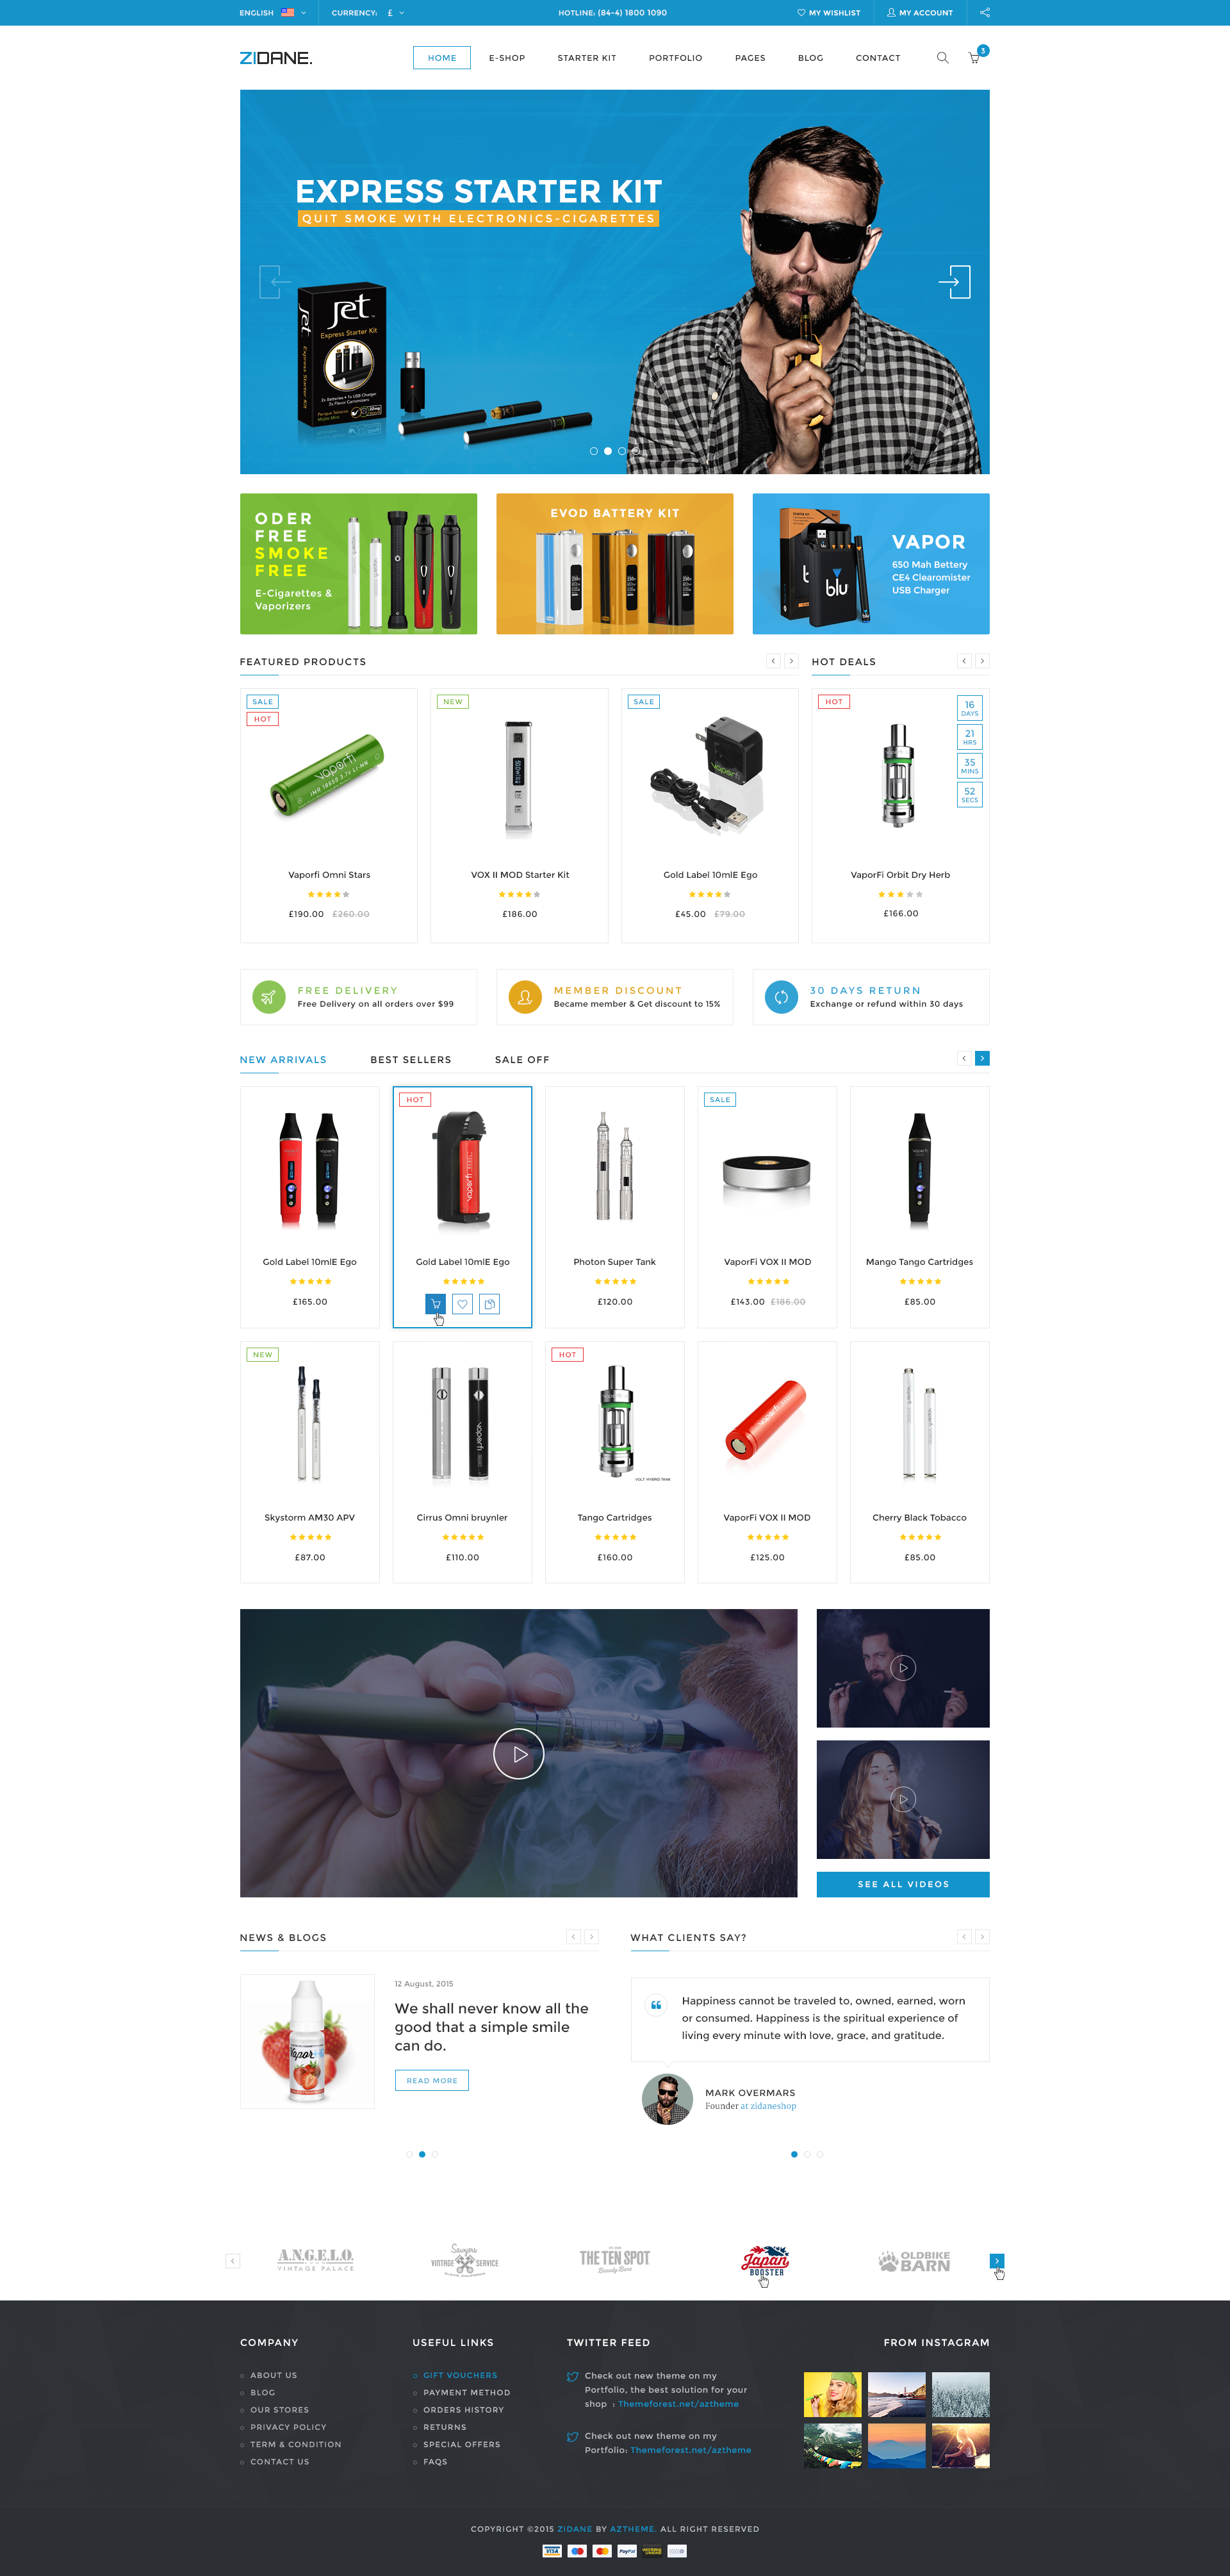 Zidane - E-Cigarettes Ecommerce PSD Template by inspitheme | ThemeForest